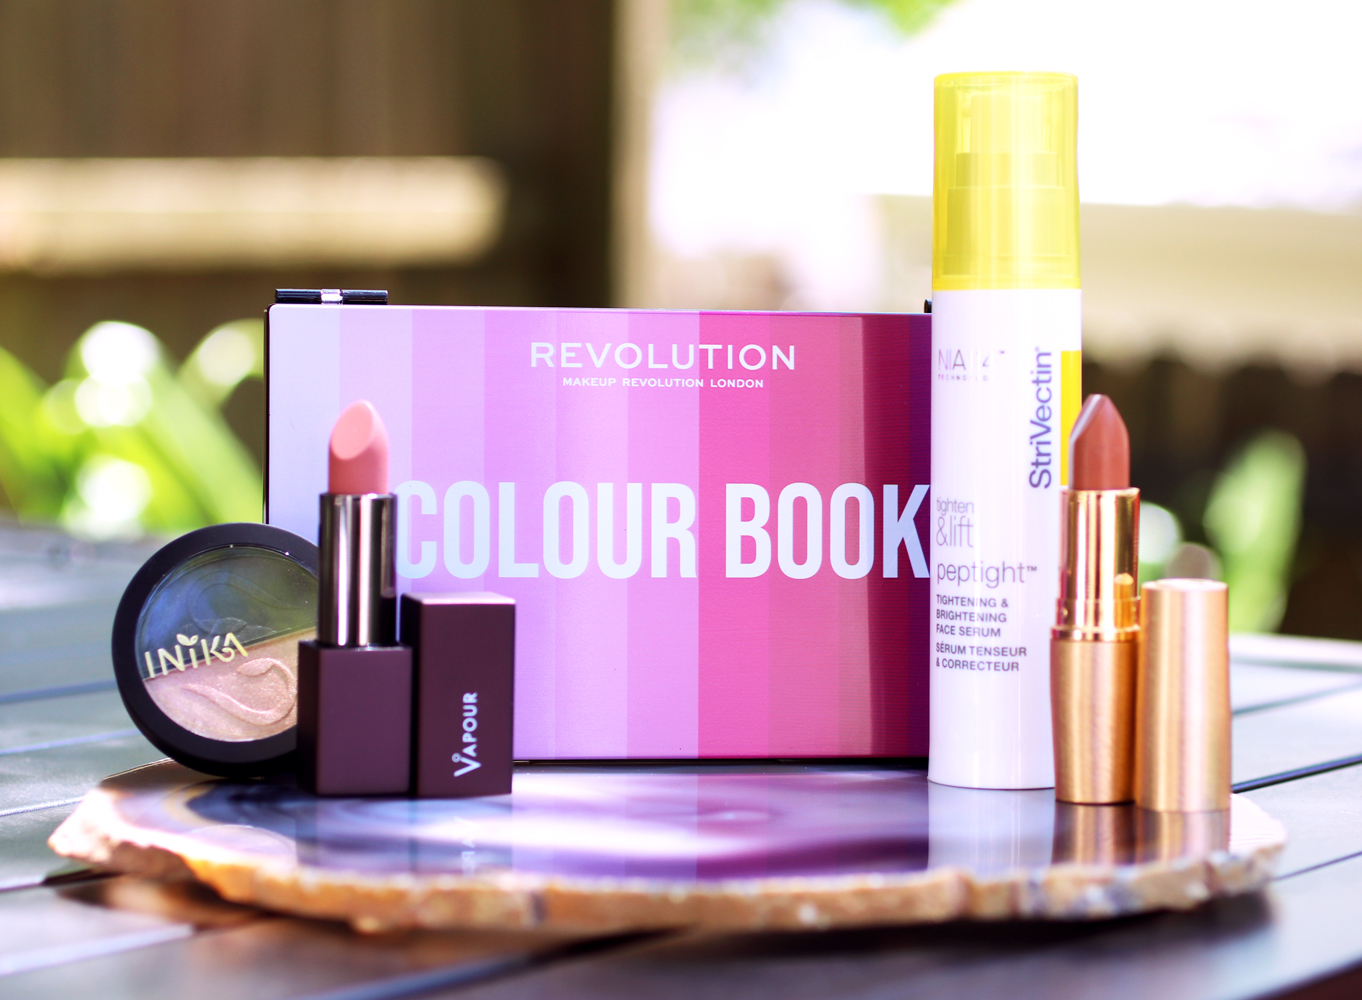 Cruelty Free Makeup and Skincare from SkinStore